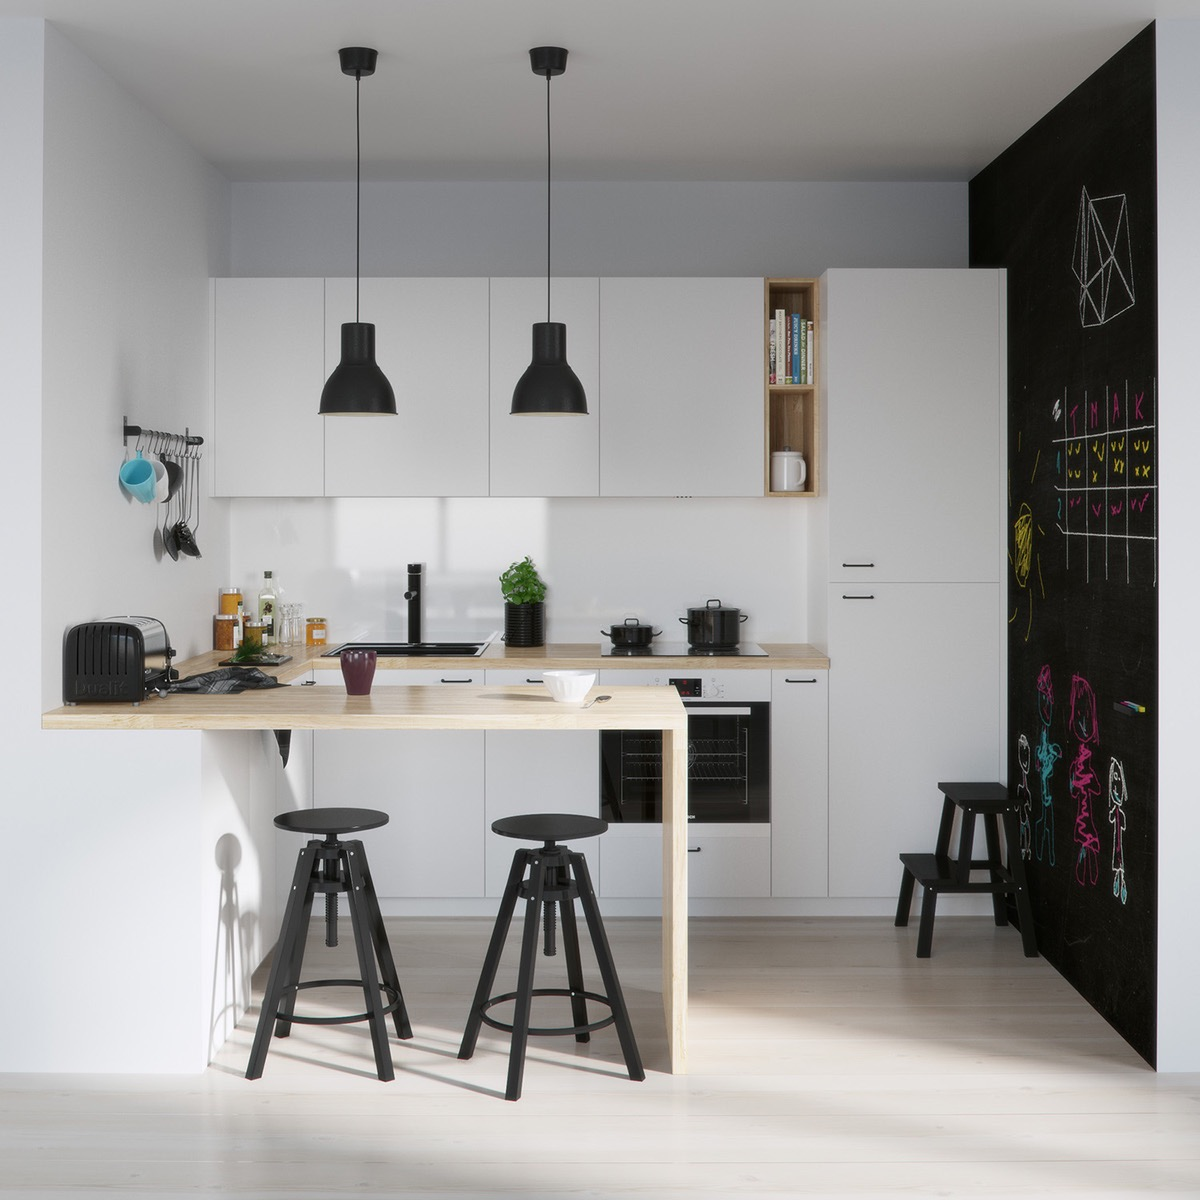 Modern White Kitchen Designs 20 Awesome White And Wood Kitchen Design Ideas Roohome Designs